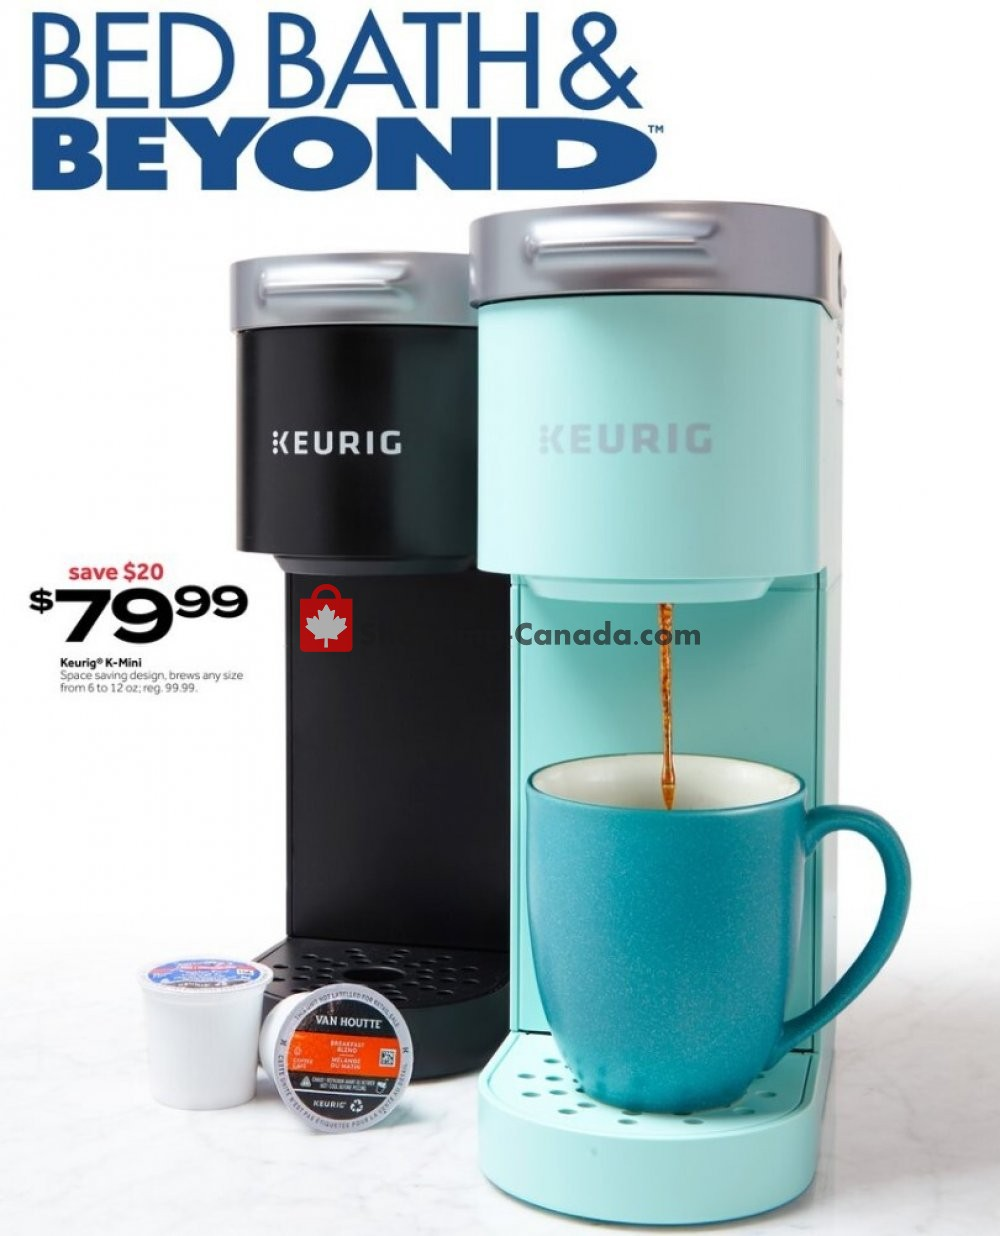 Flyer Bed Bath & Beyond Canada - from Monday July 13, 2020 to Sunday July 26, 2020